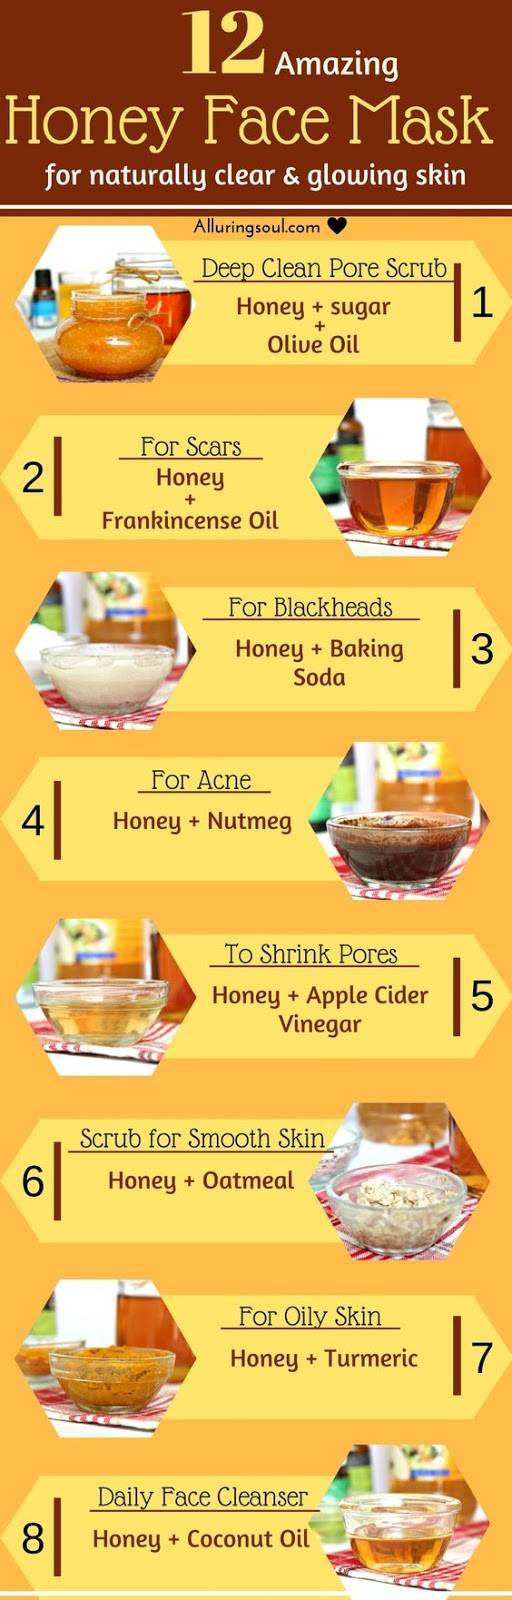 12 Honey Face Mask For Naturally Clear And Glowing Skin